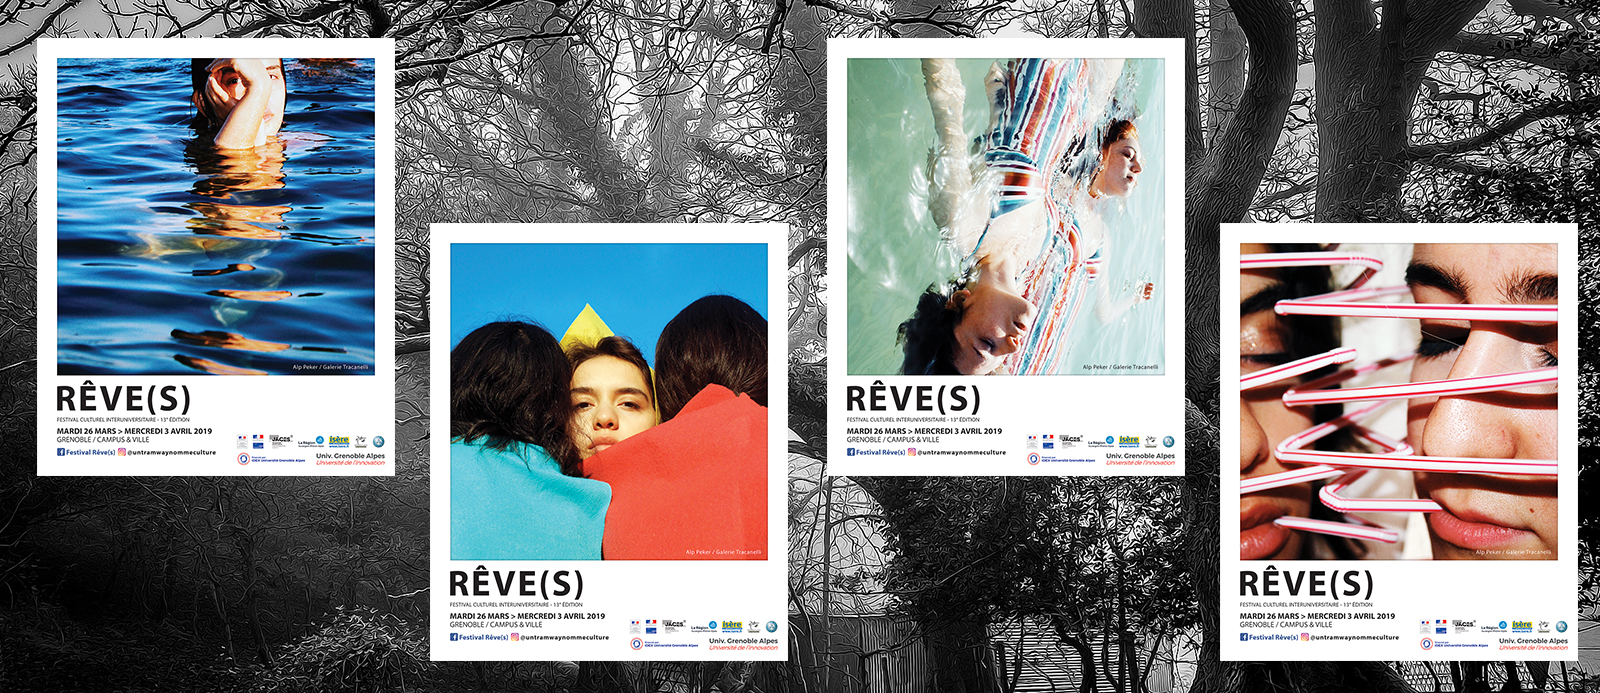 REVES-newsletter.jpg